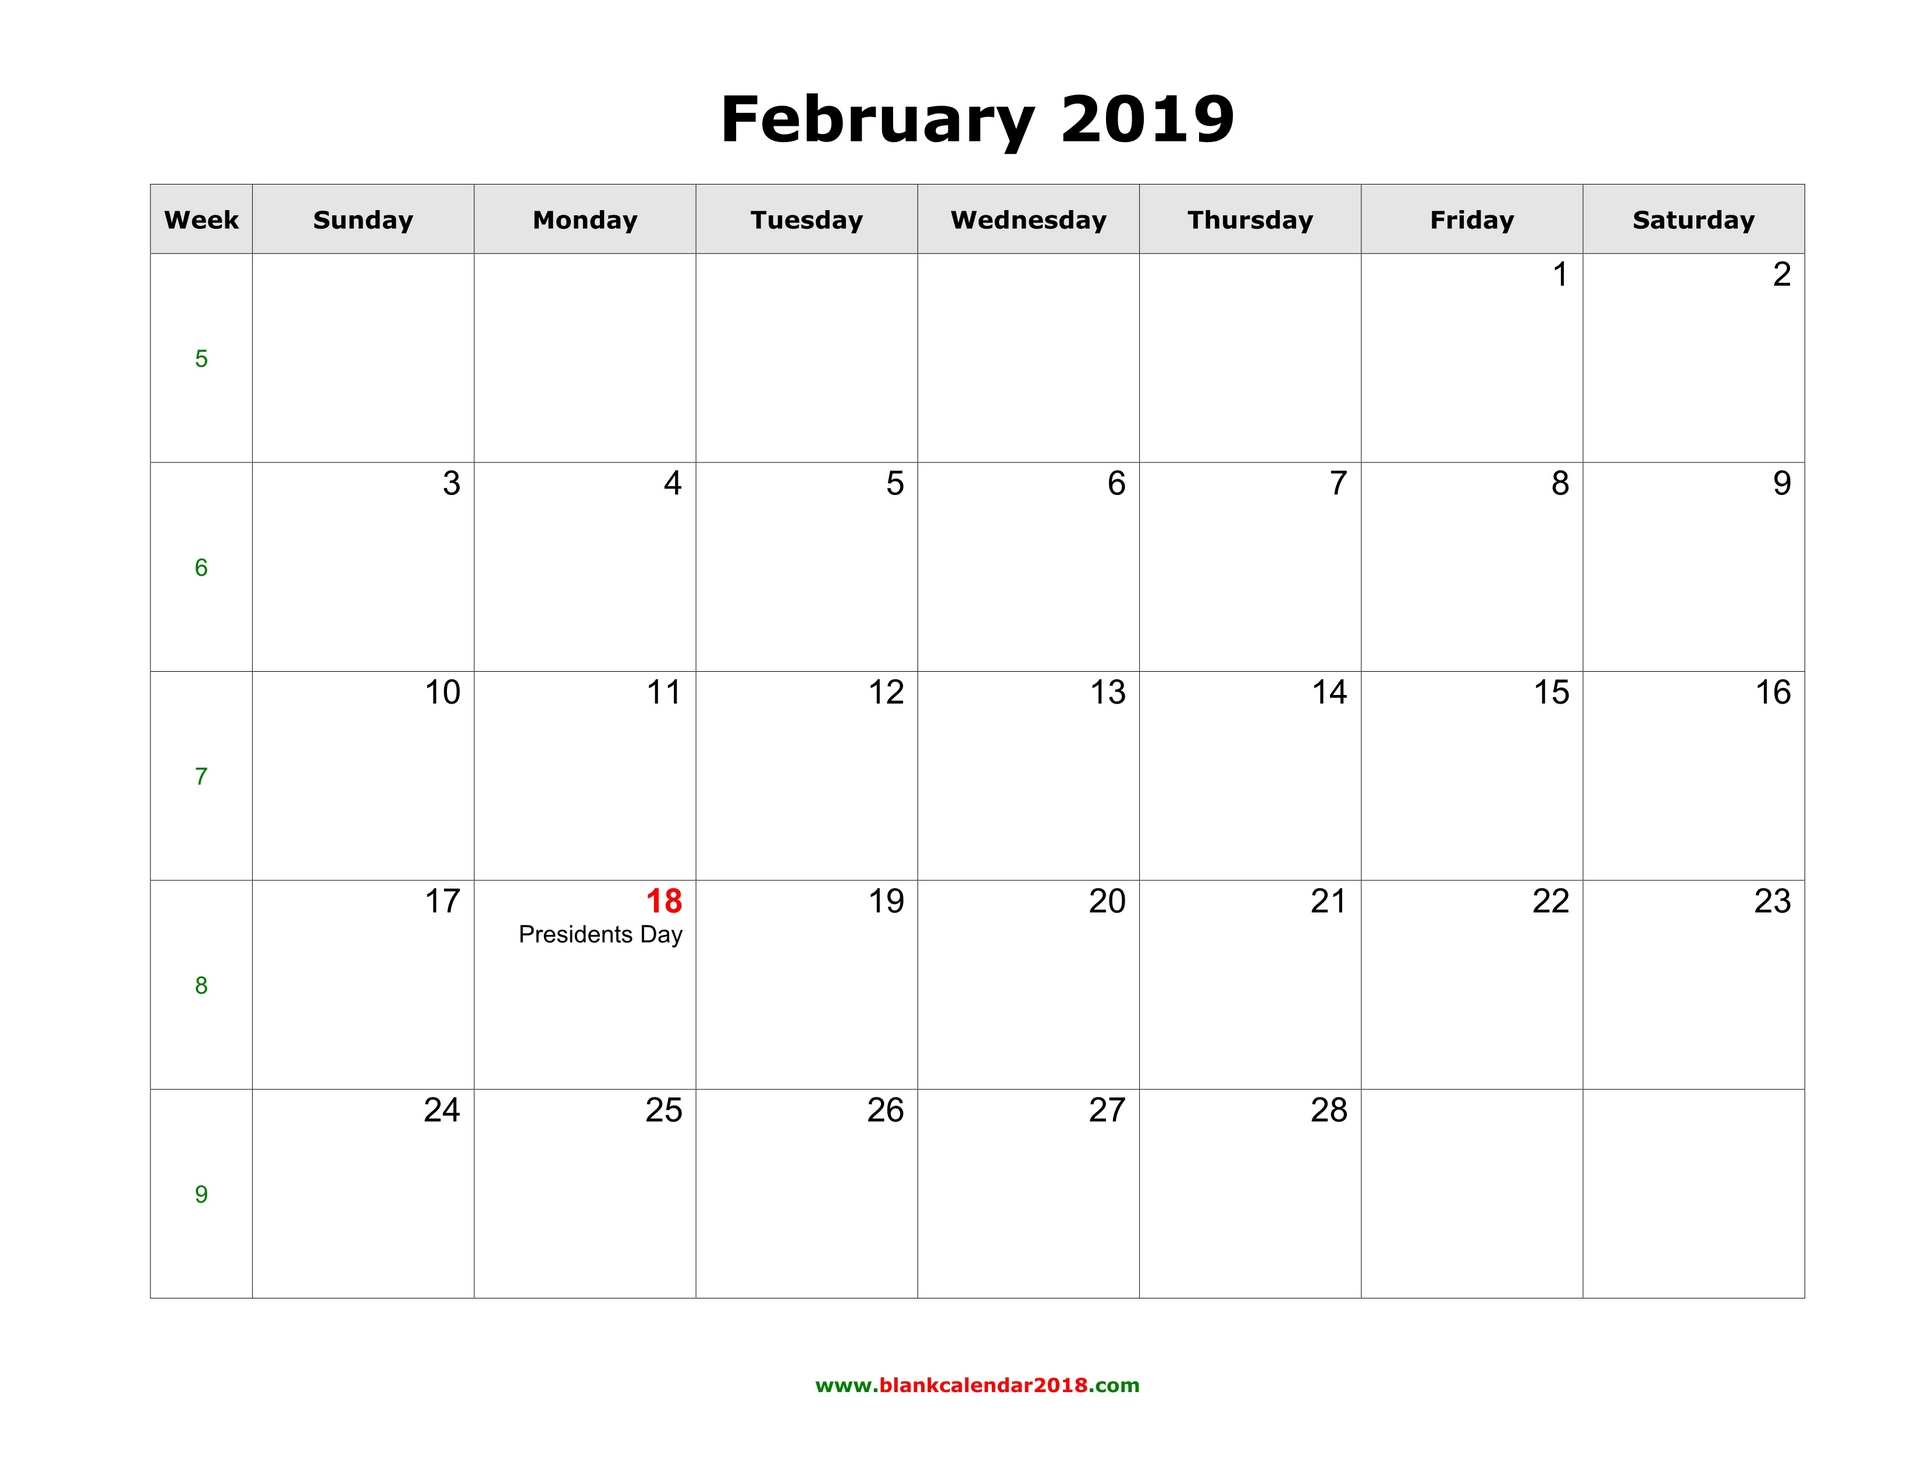 Monthly Calendar Grid February 2019 Blank Calendar for February 2019